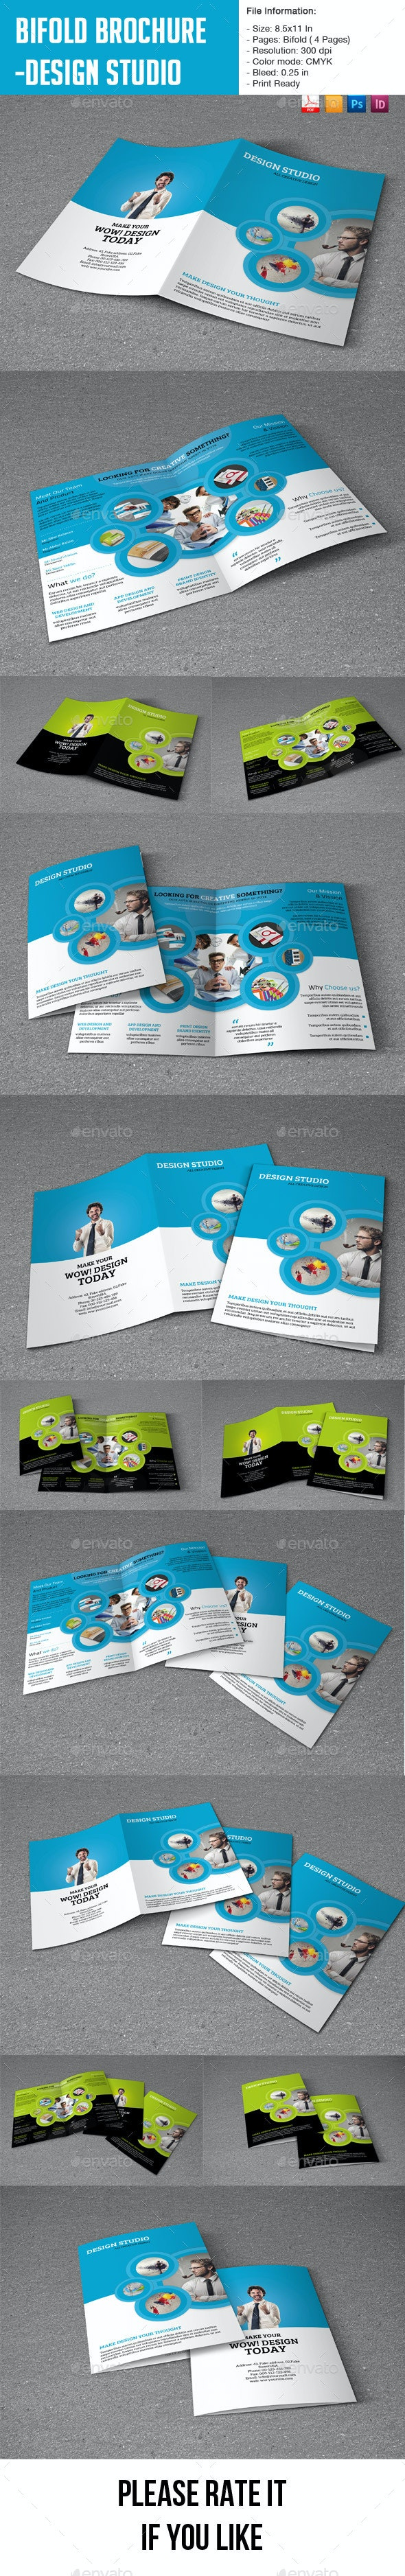 Bifold Brochure for Design Studio- 4 Pages - Corporate Brochures